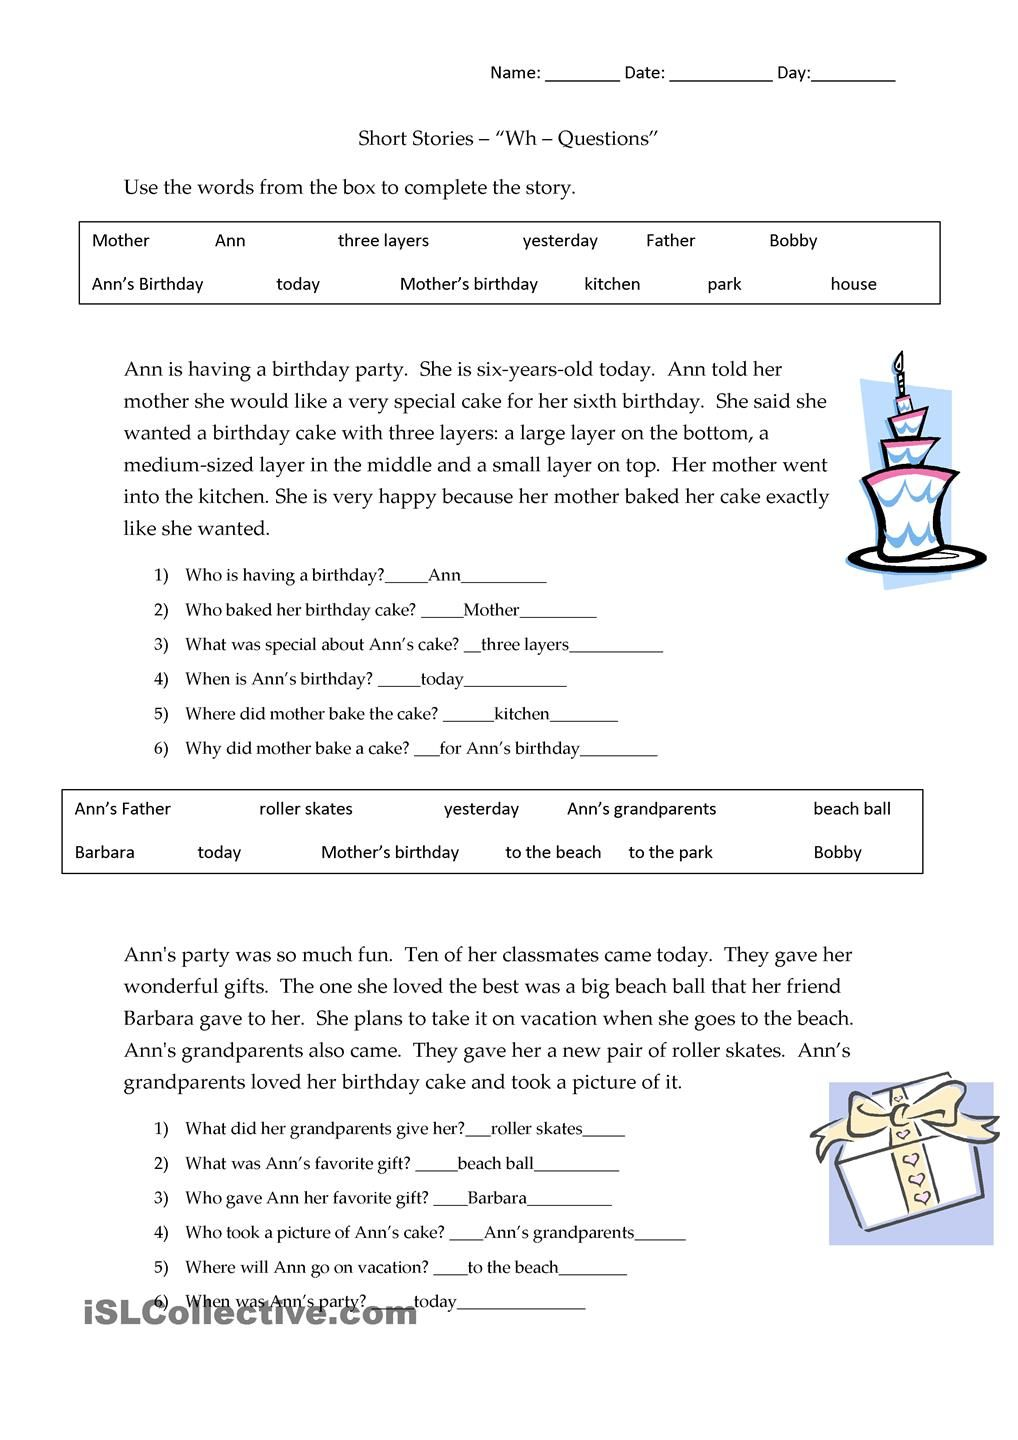 medium resolution of Short Stories Wh-questions - answers   Wh questions worksheets